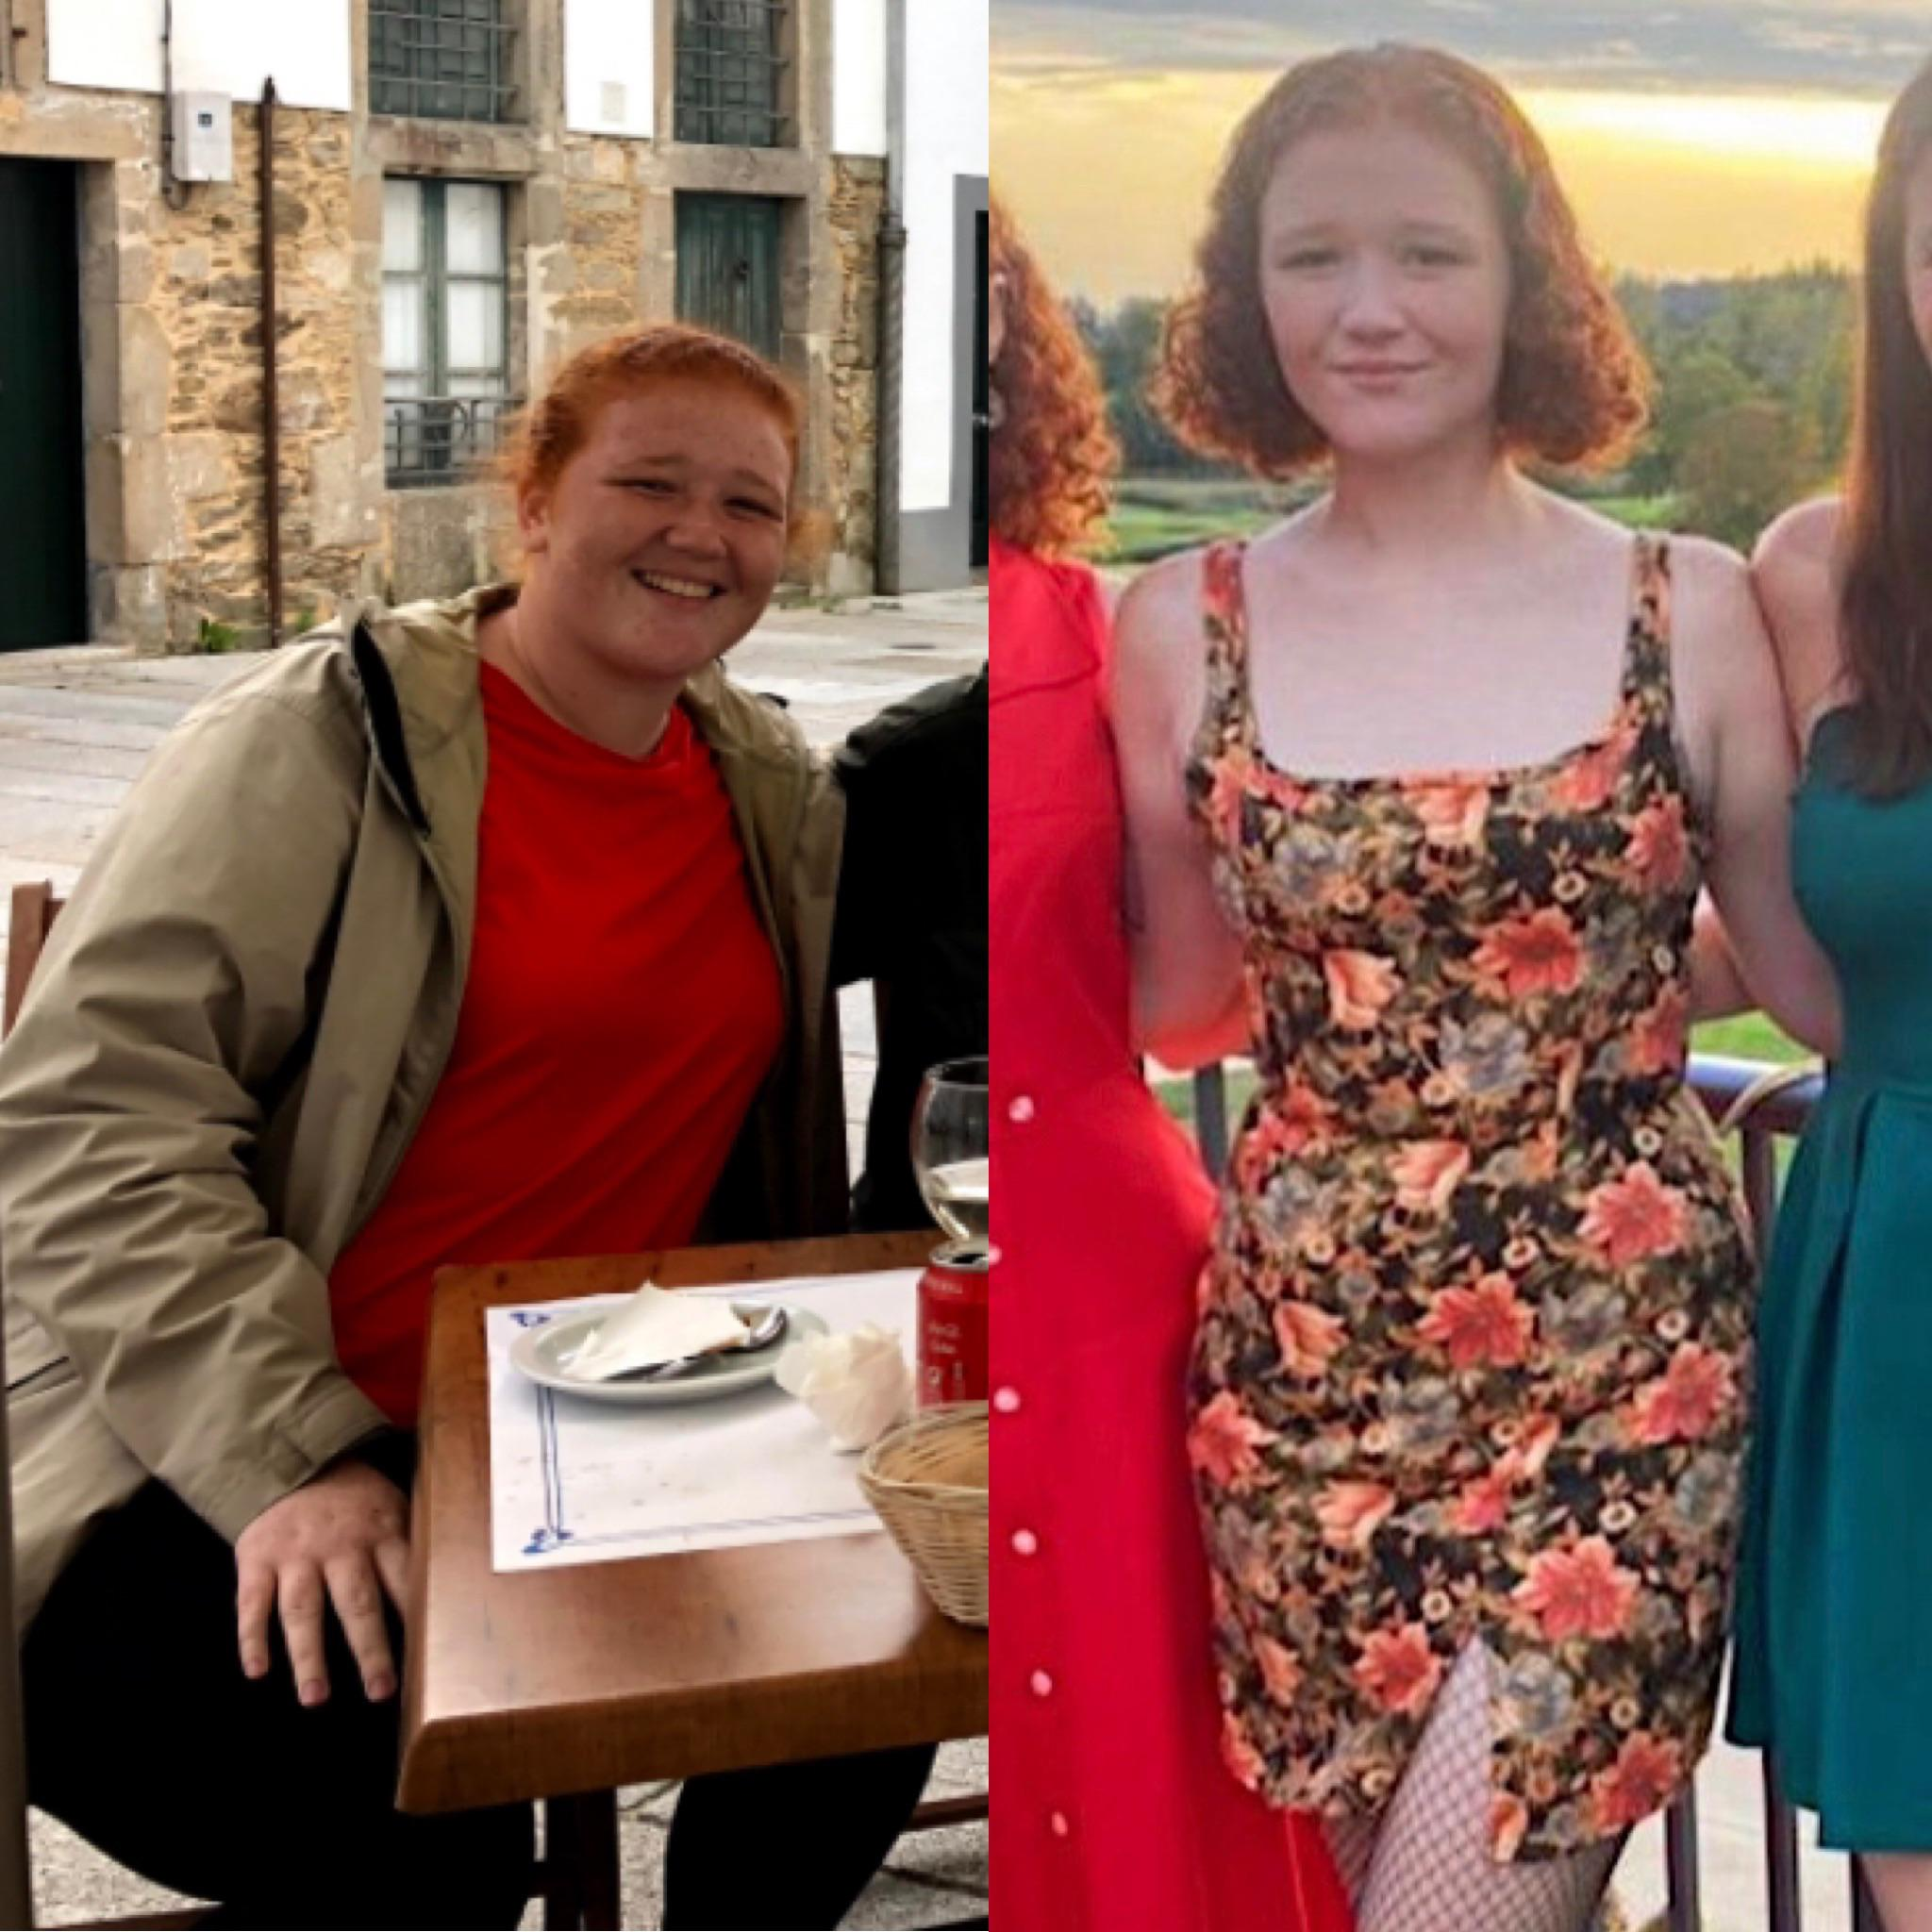 5 feet 9 Female Before and After 80 lbs Weight Loss 245 lbs to 165 lbs